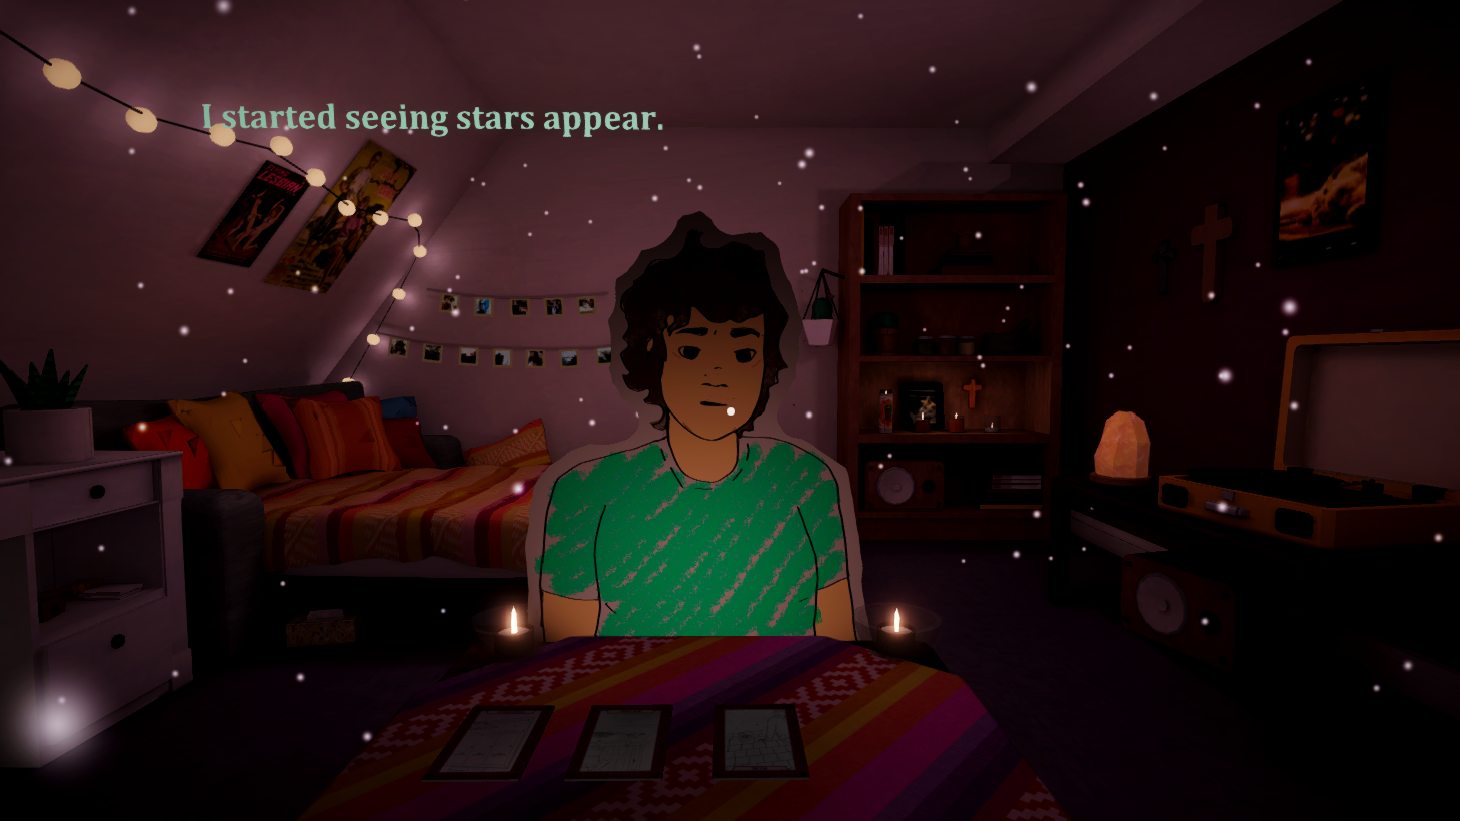 A feminine figure sits across a table. Text in the top left corner says 'I started seeing stars appear.'